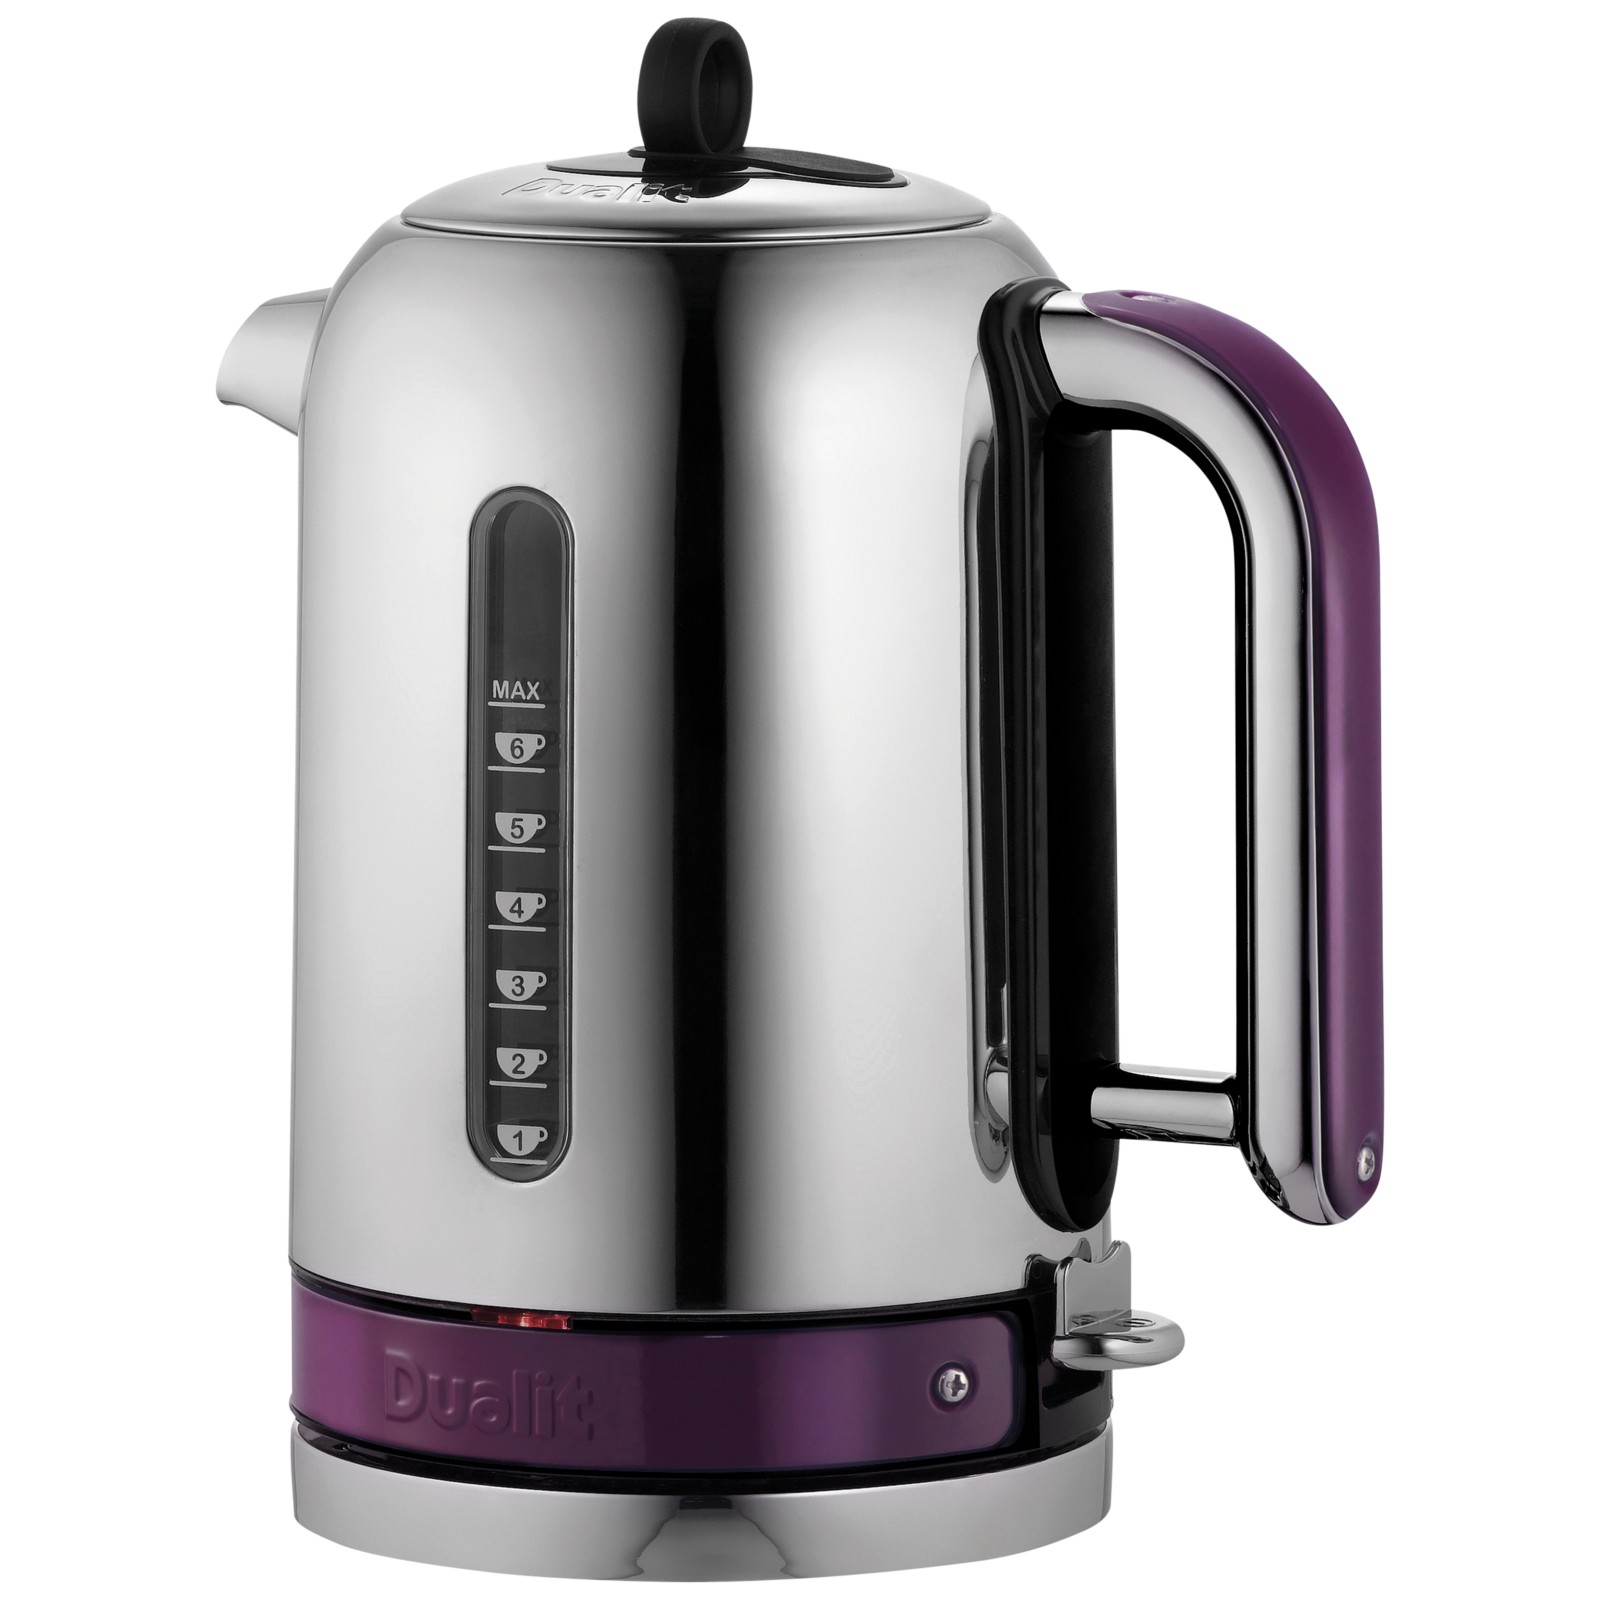 Dualit Made to Order Classic Kettle Stainless Steel/Purple Violet Gloss